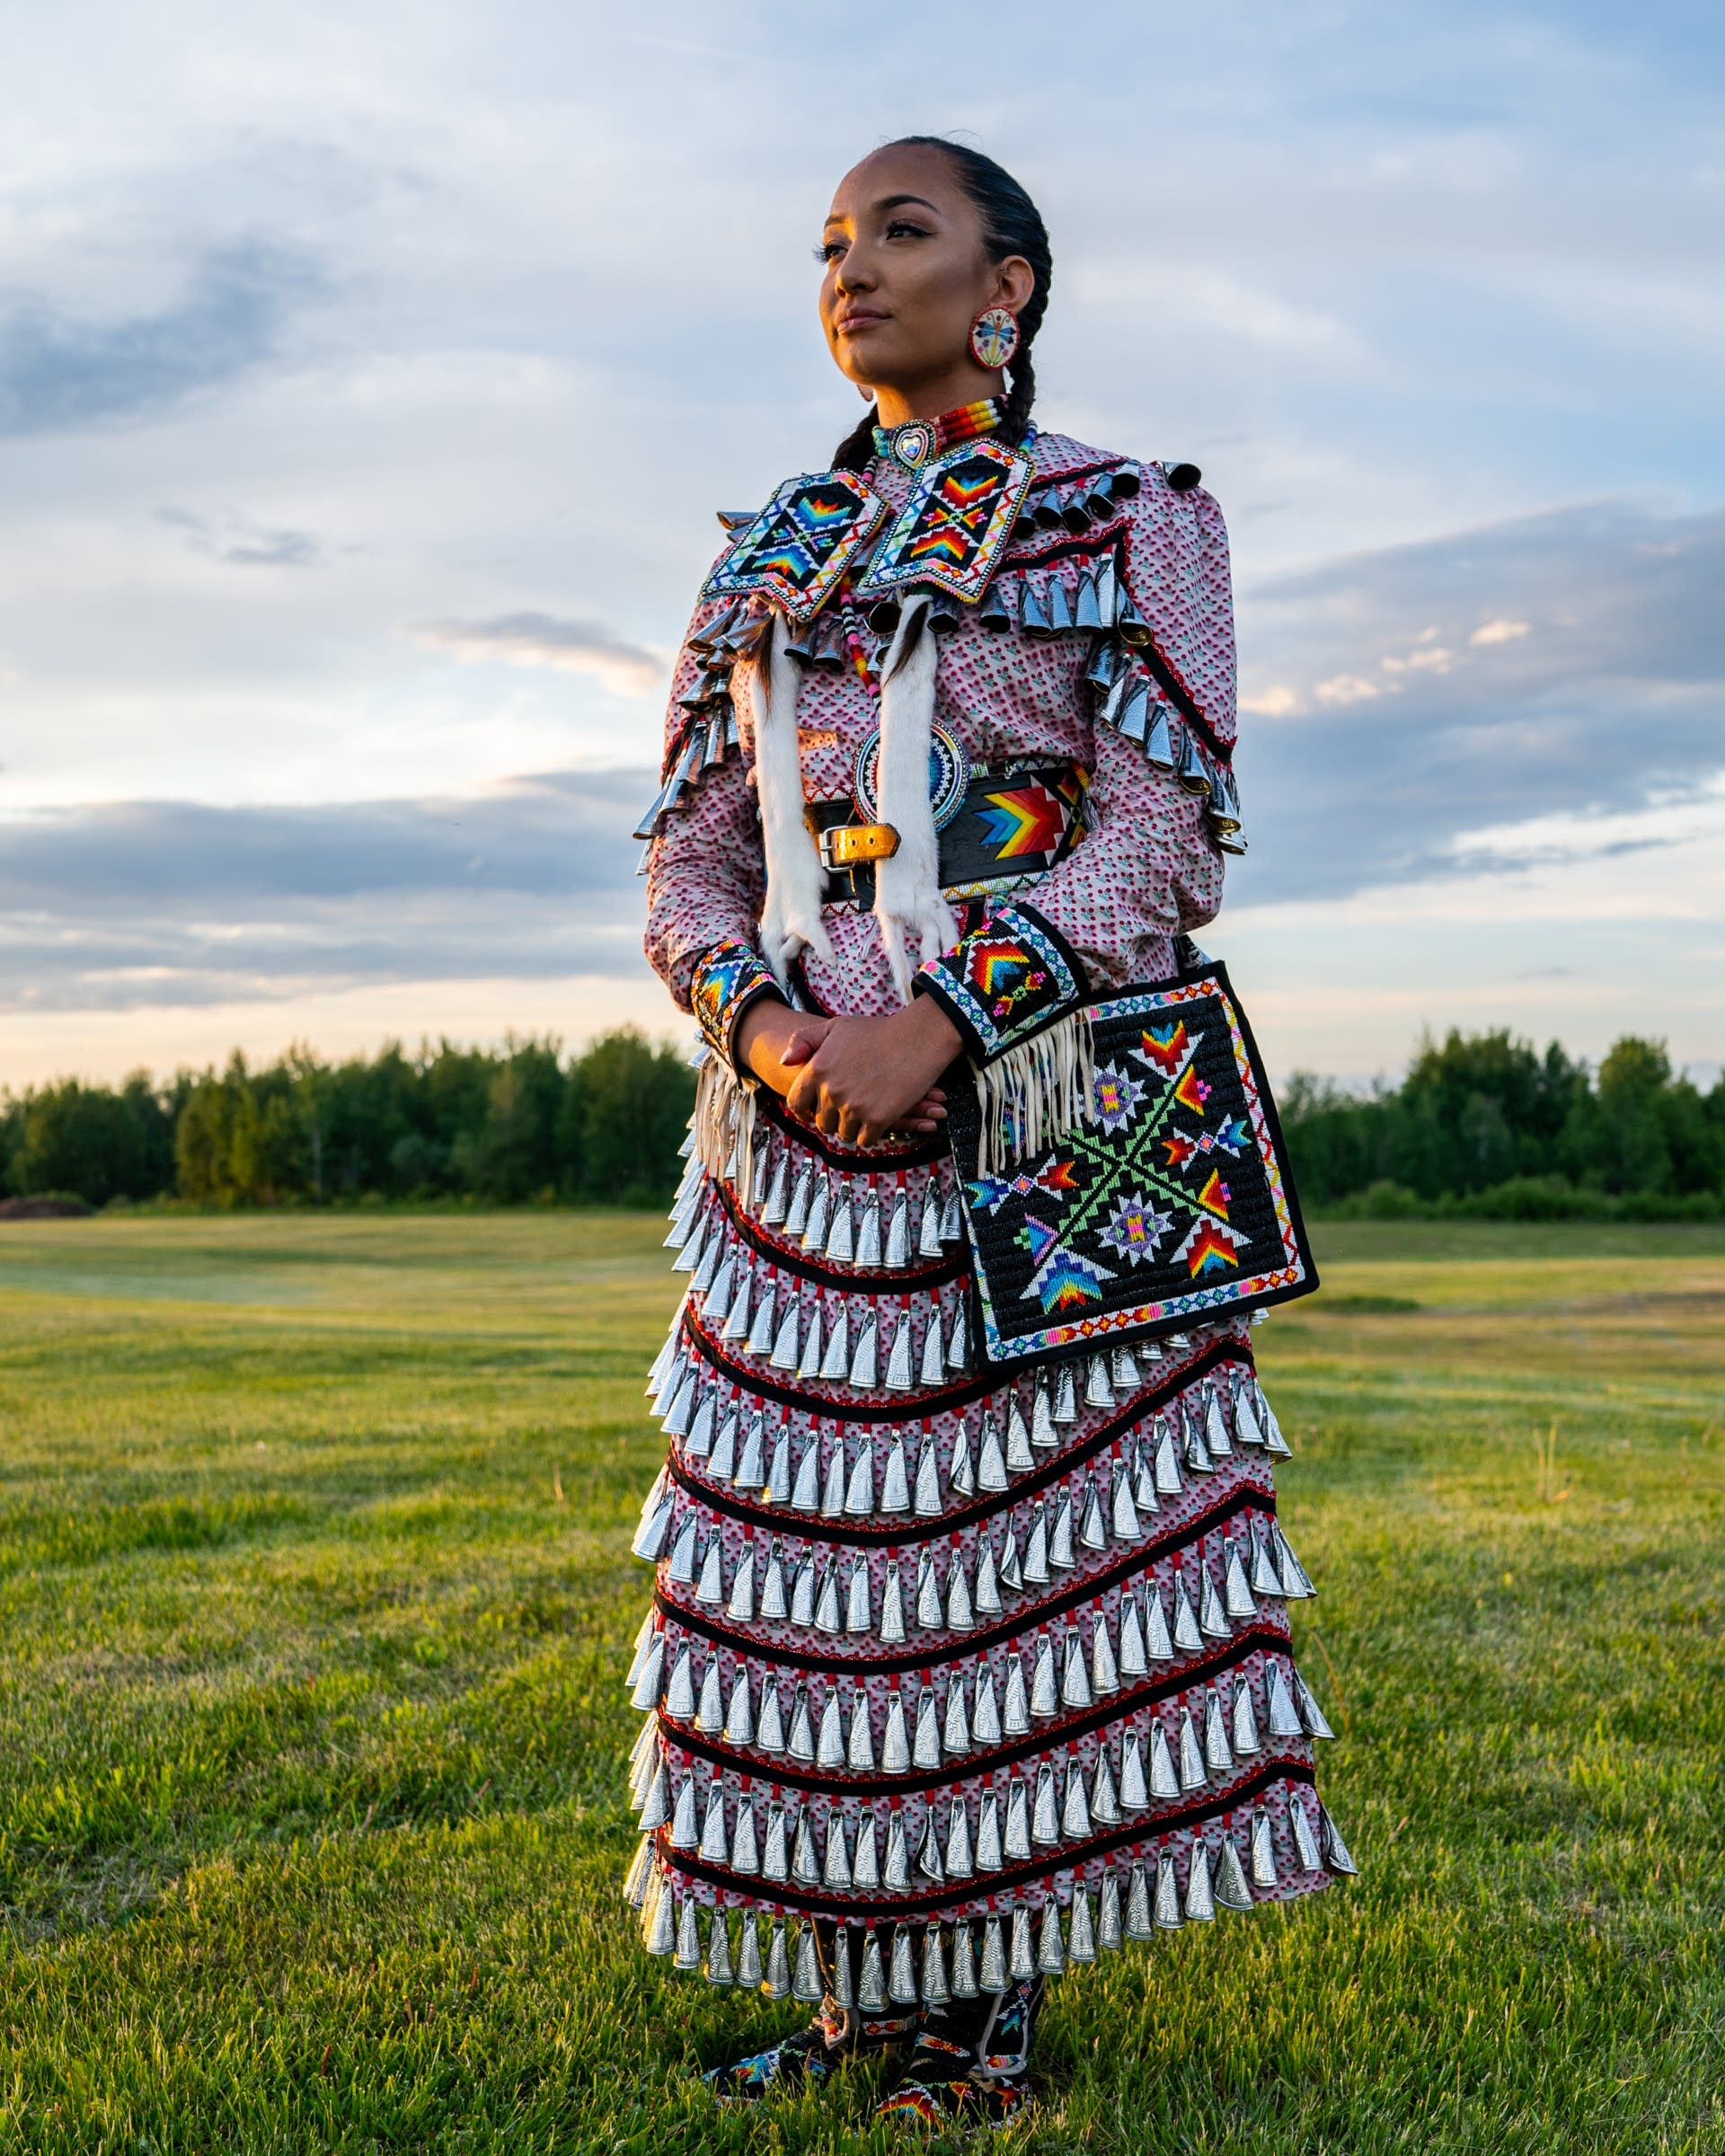 Mikah Whitecloud of the Red Lake Nation and the Choctaw Nation of Oklahoma.